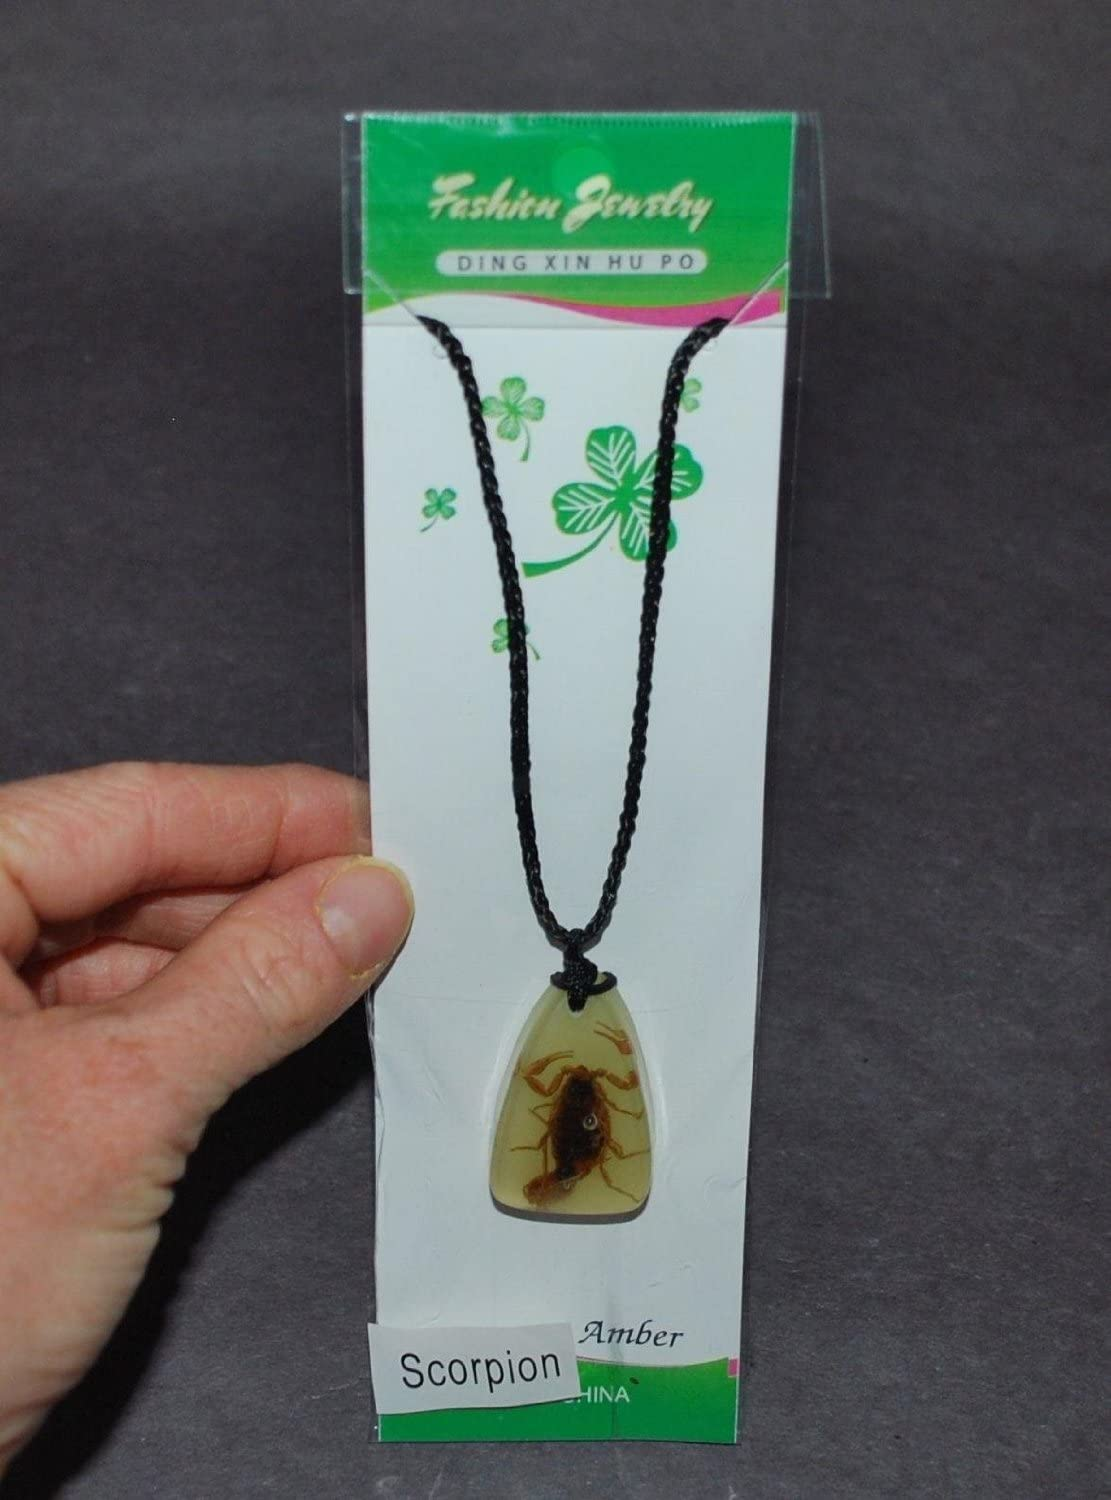 AWESOME SCORPION Necklace GLOW IN THE DARK Replica Fossil Amber KIDS LOVE THEM!!